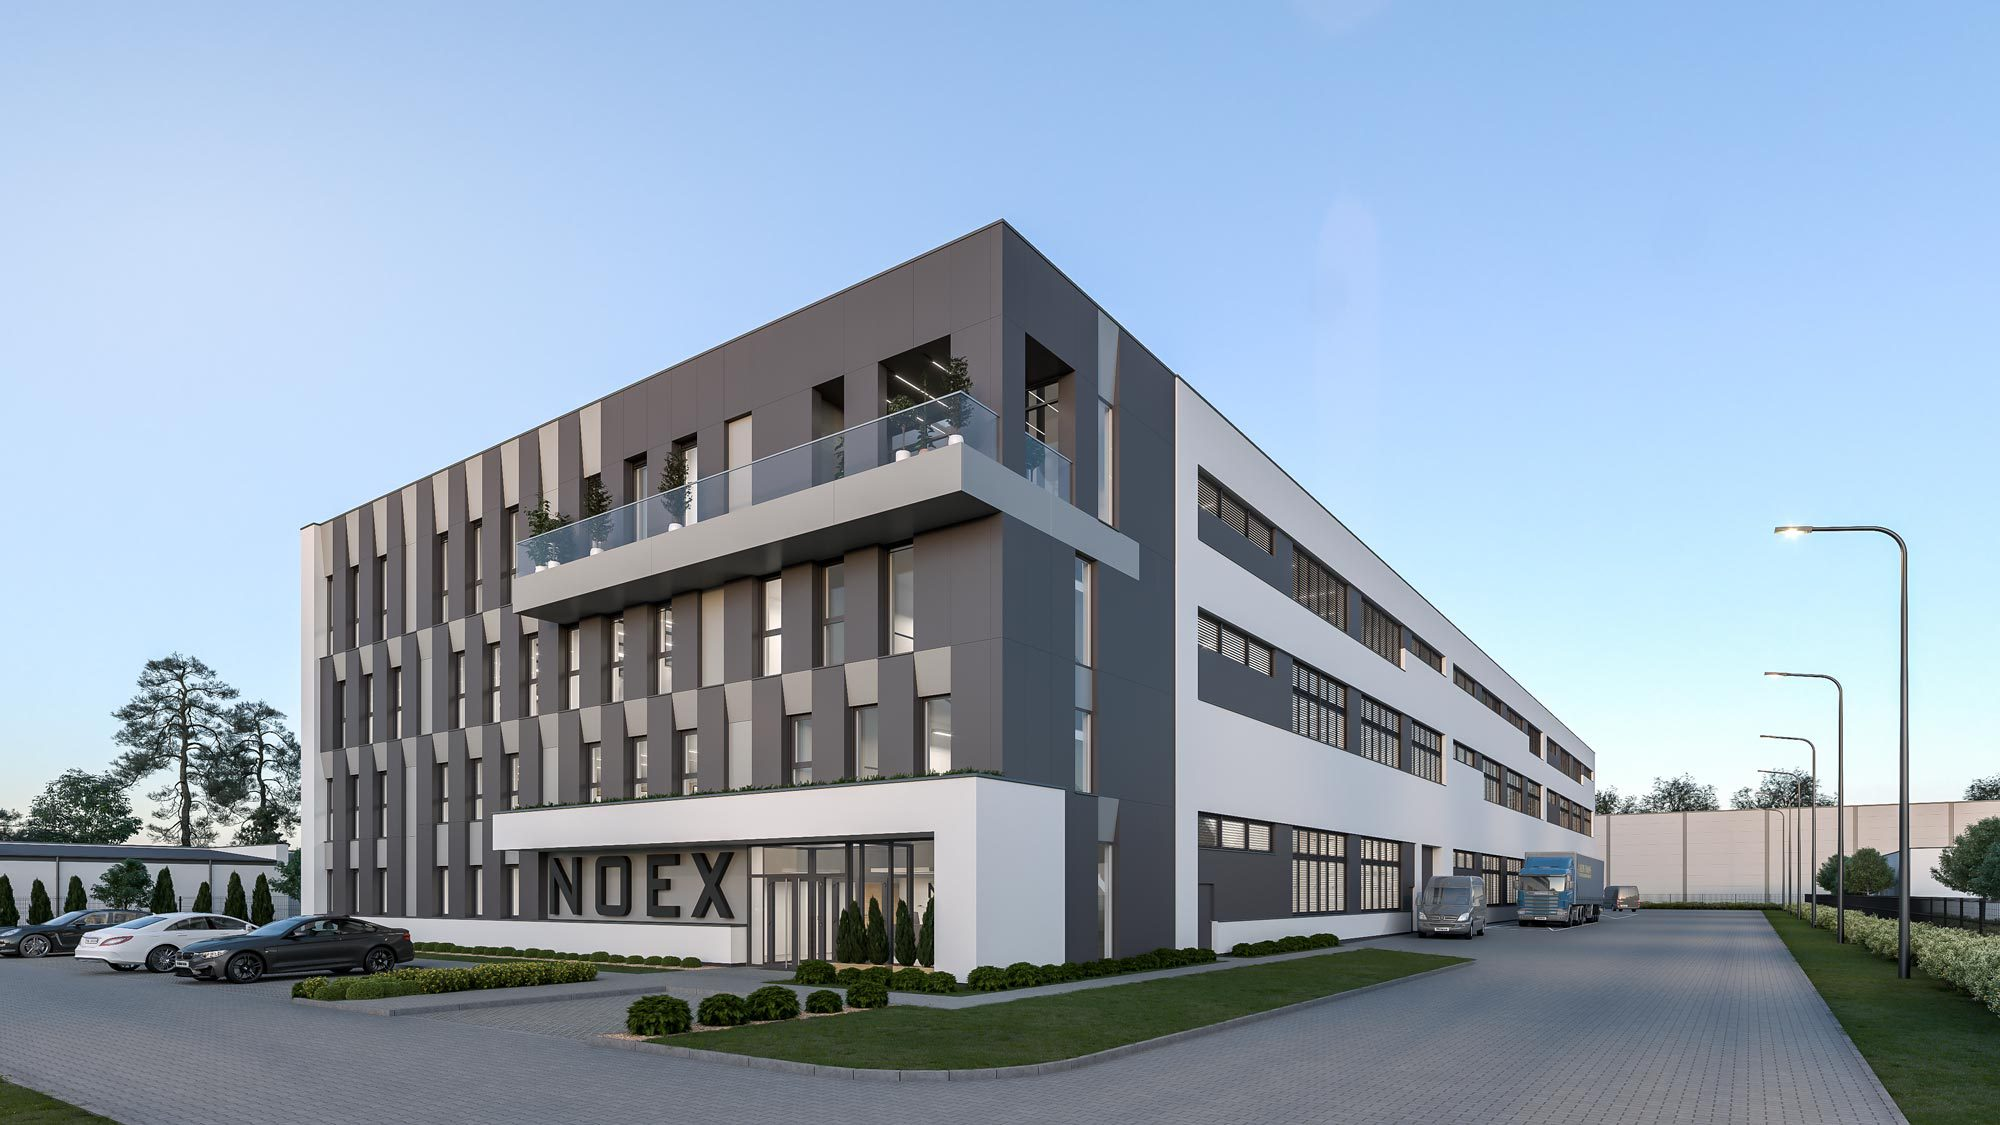 19007-NOEX-Headquarters-View-2-3D-Architectural-Visualization-Jacks-Pixels